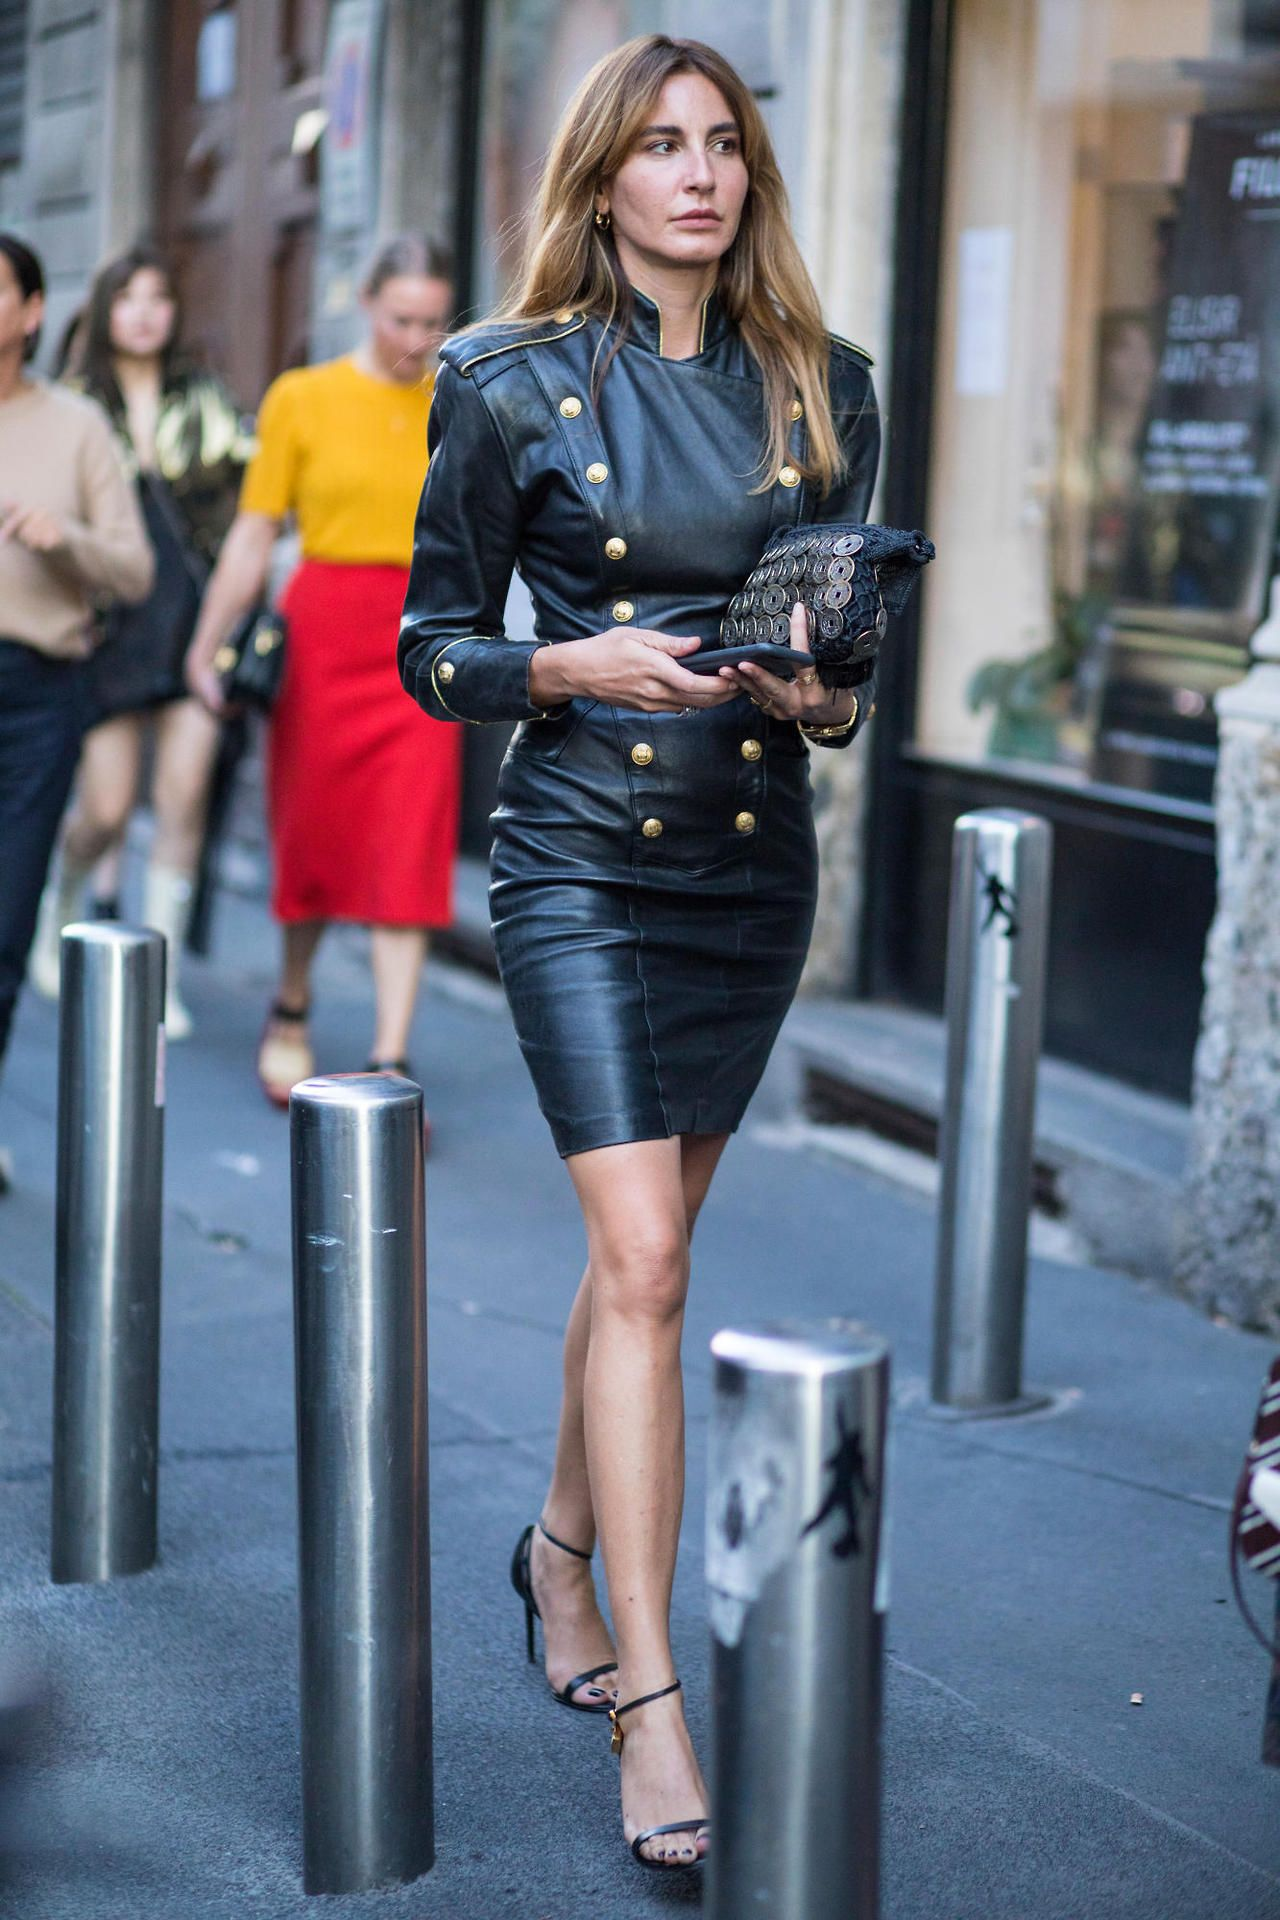 Dominant Leather : Photo | Hot wife in 2019 | Leather ...